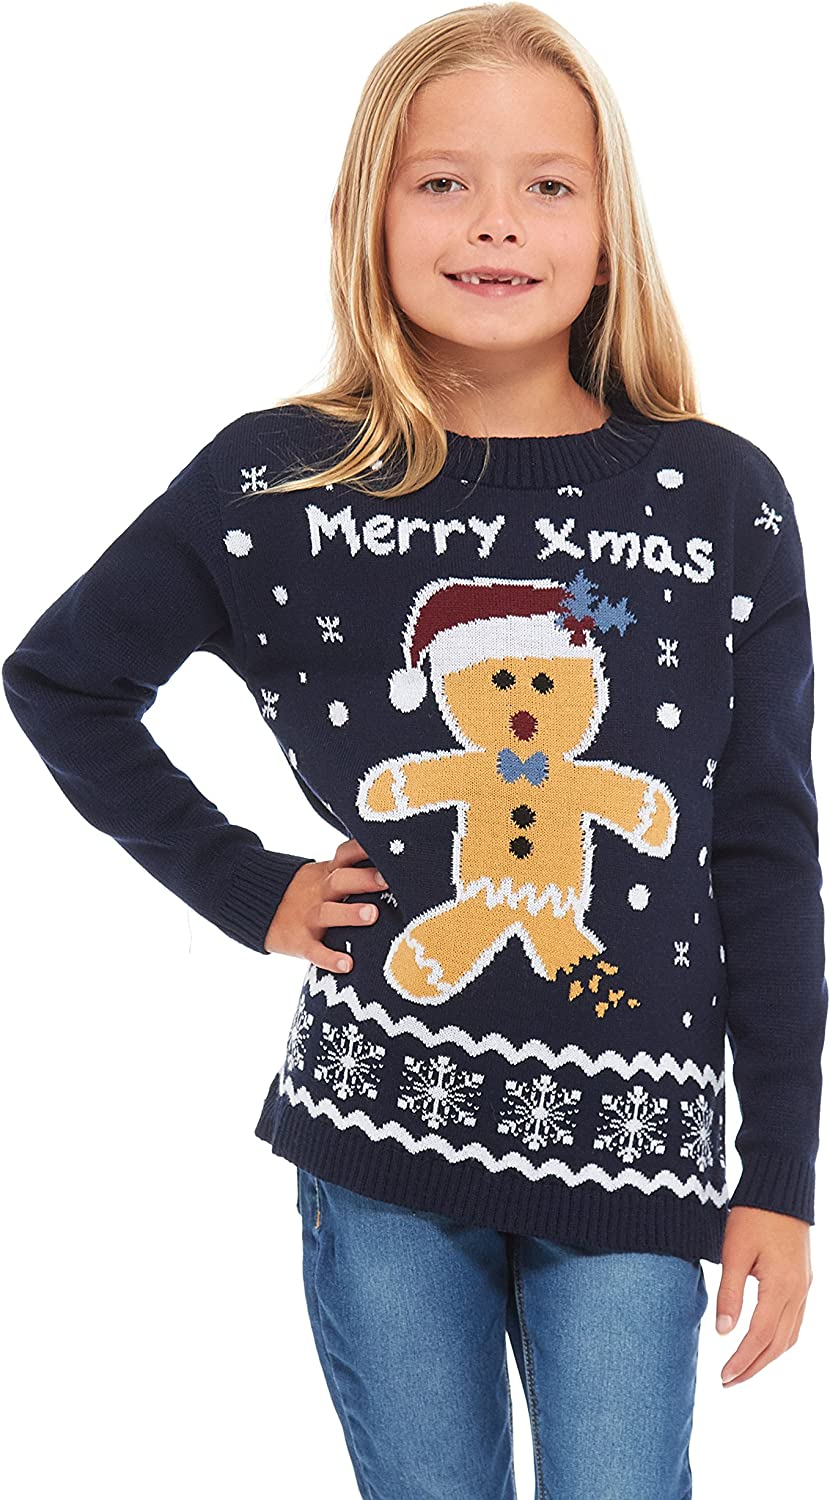 Elf New Camp Ltd Girls Kids Boys Children Unisex Christmas Xmas Knitted Novelty Football Jumper Sweater Christmas Xmas 2019 Exclusively to for Ages 2-14 Years Retro